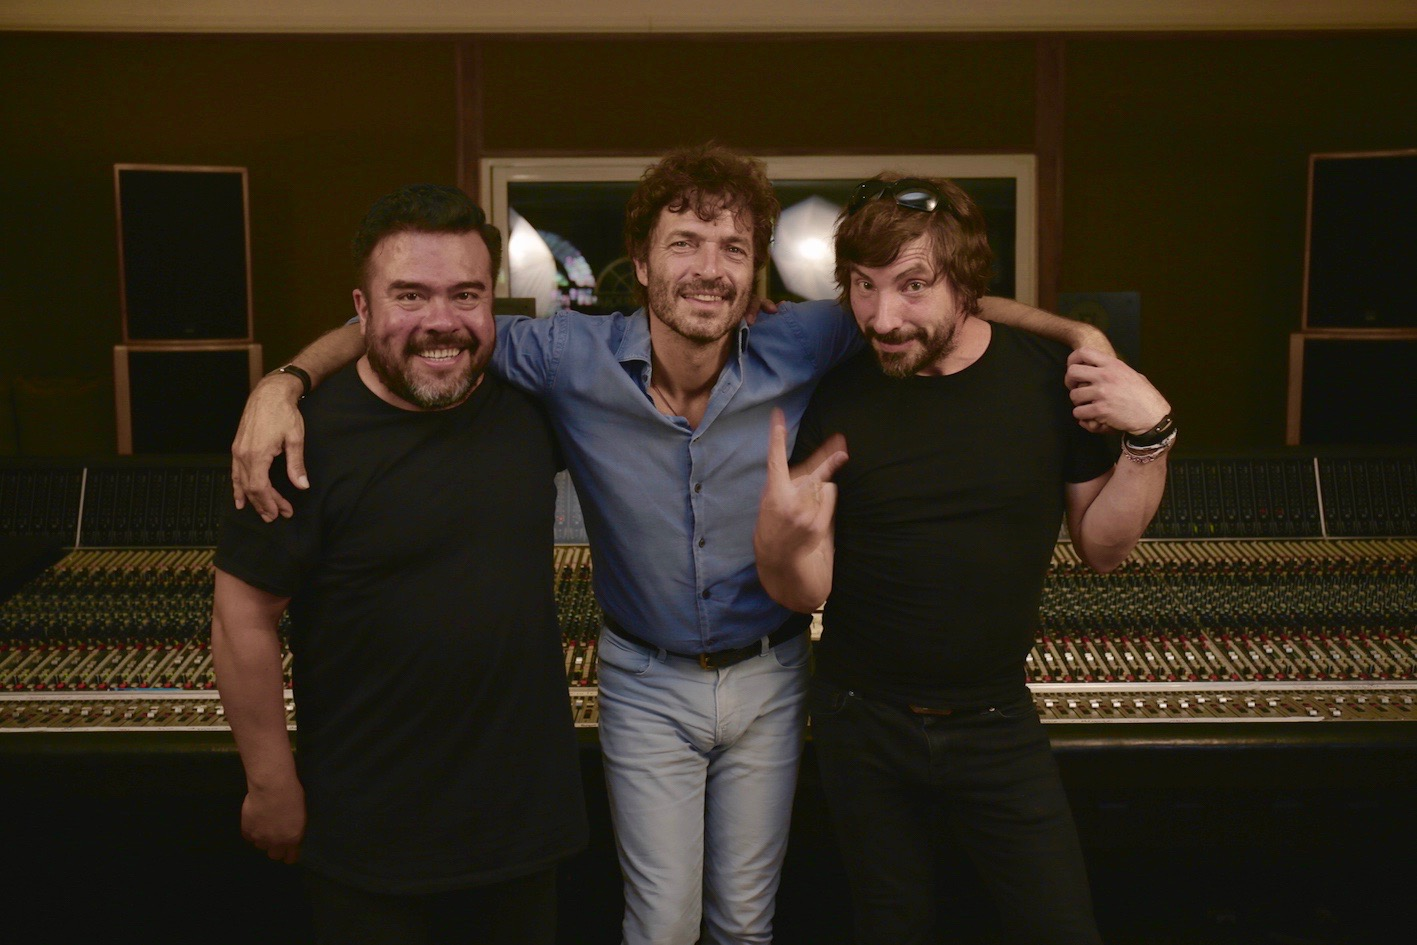 With Peter Warner And Philippe Zdar